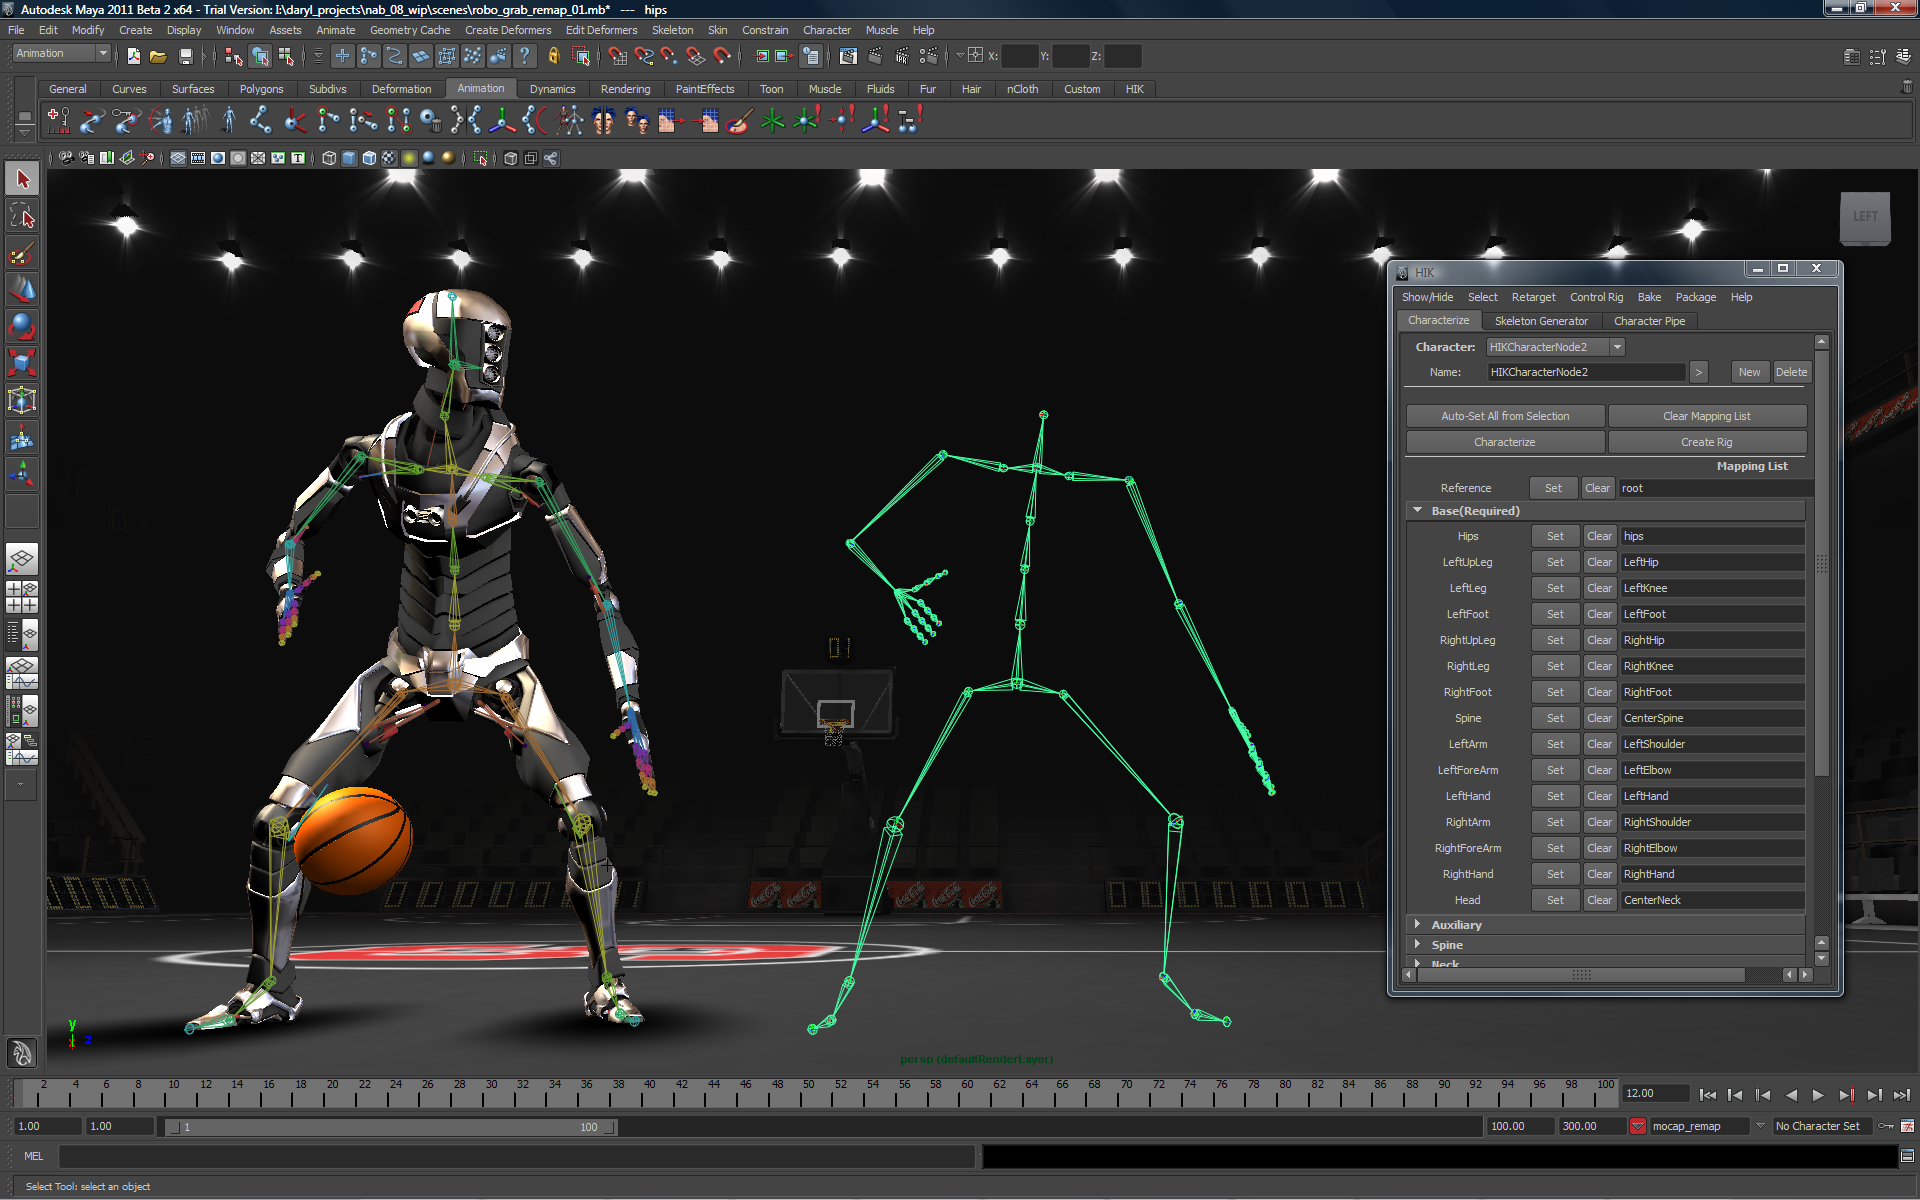 Autodesk gives away 25m in free 3d modeling software to 3d design application